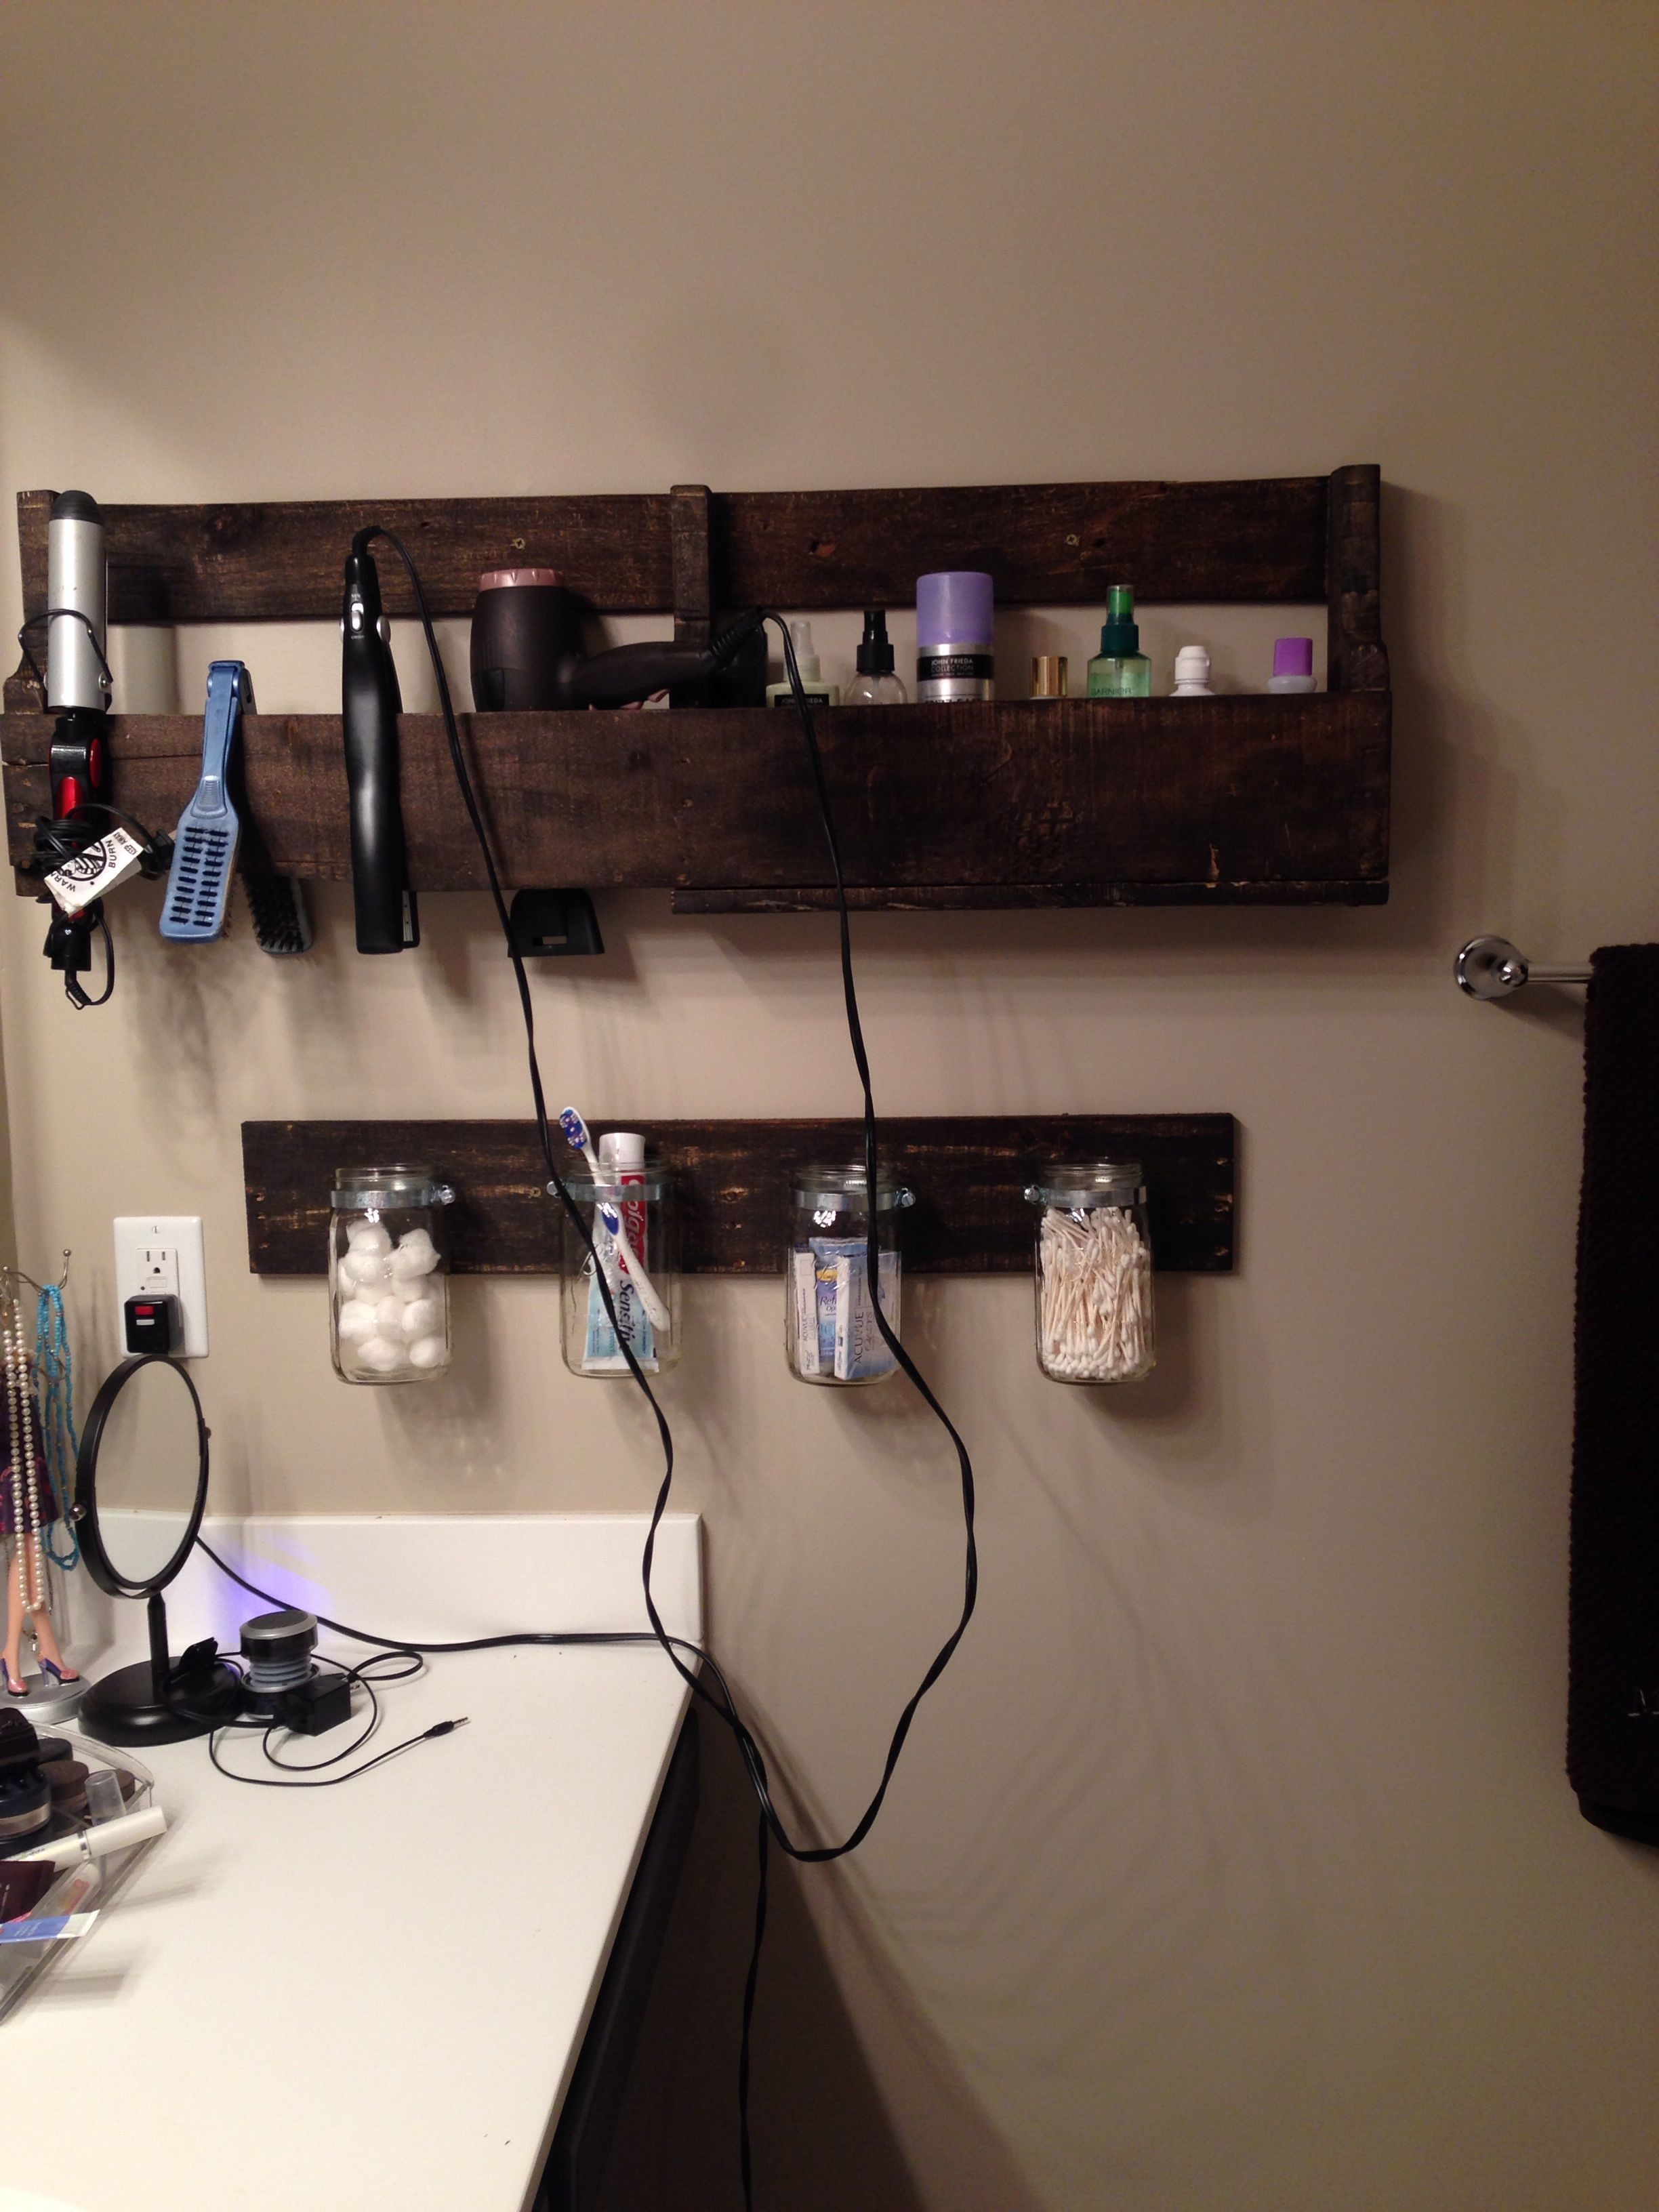 My new bathroom pallet shelves!! | Bathroom | Pinterest | Pallet ...